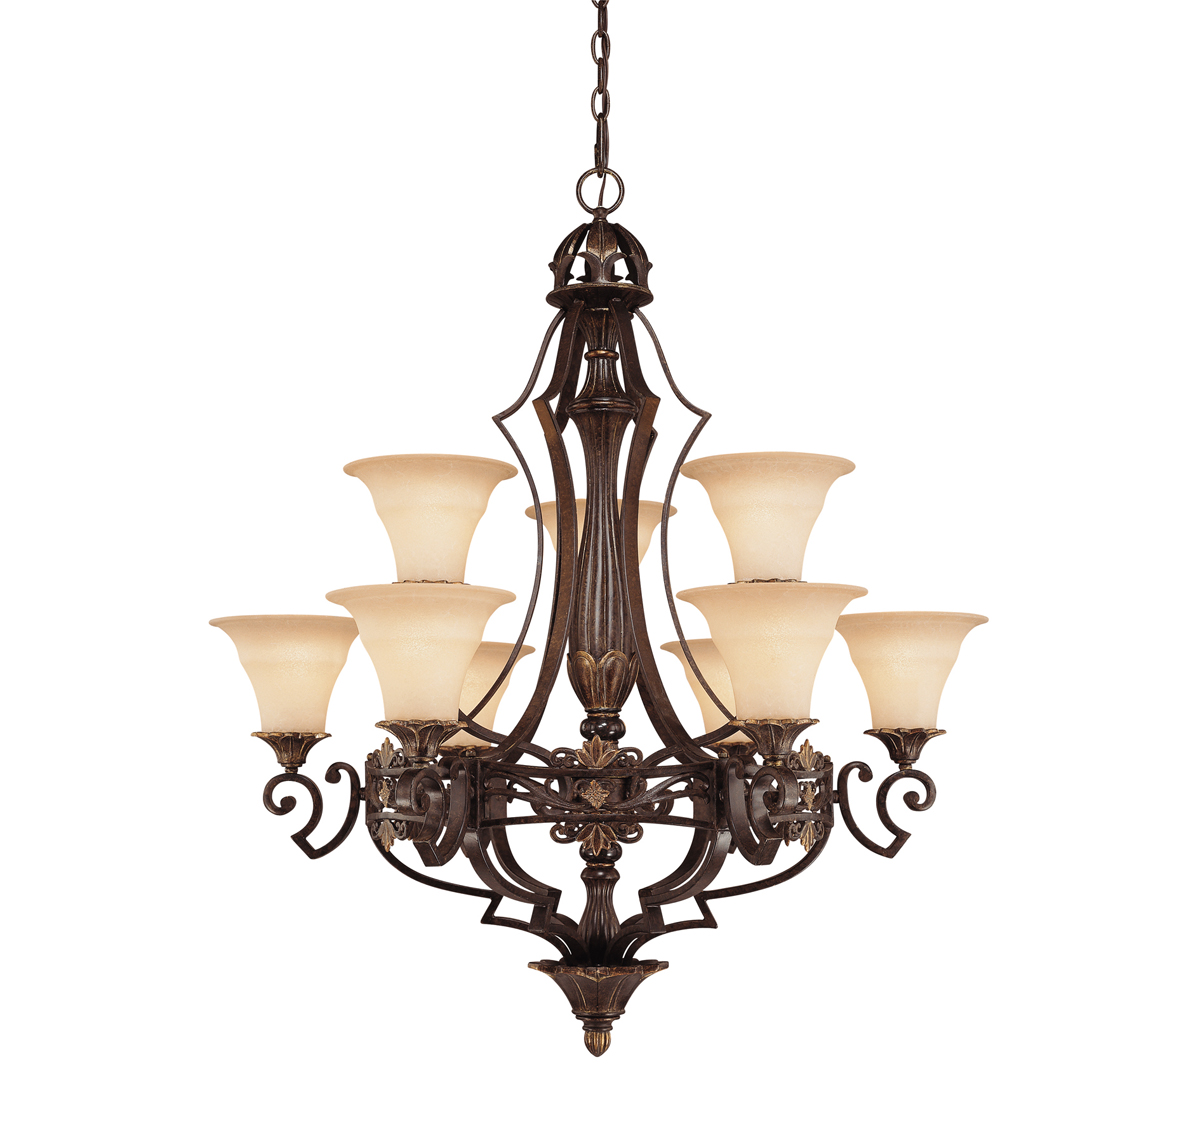 Savoy House Lighting (1-0151-9-76) Southerby 9 Light Chandelier in Florencian Bronze Finish